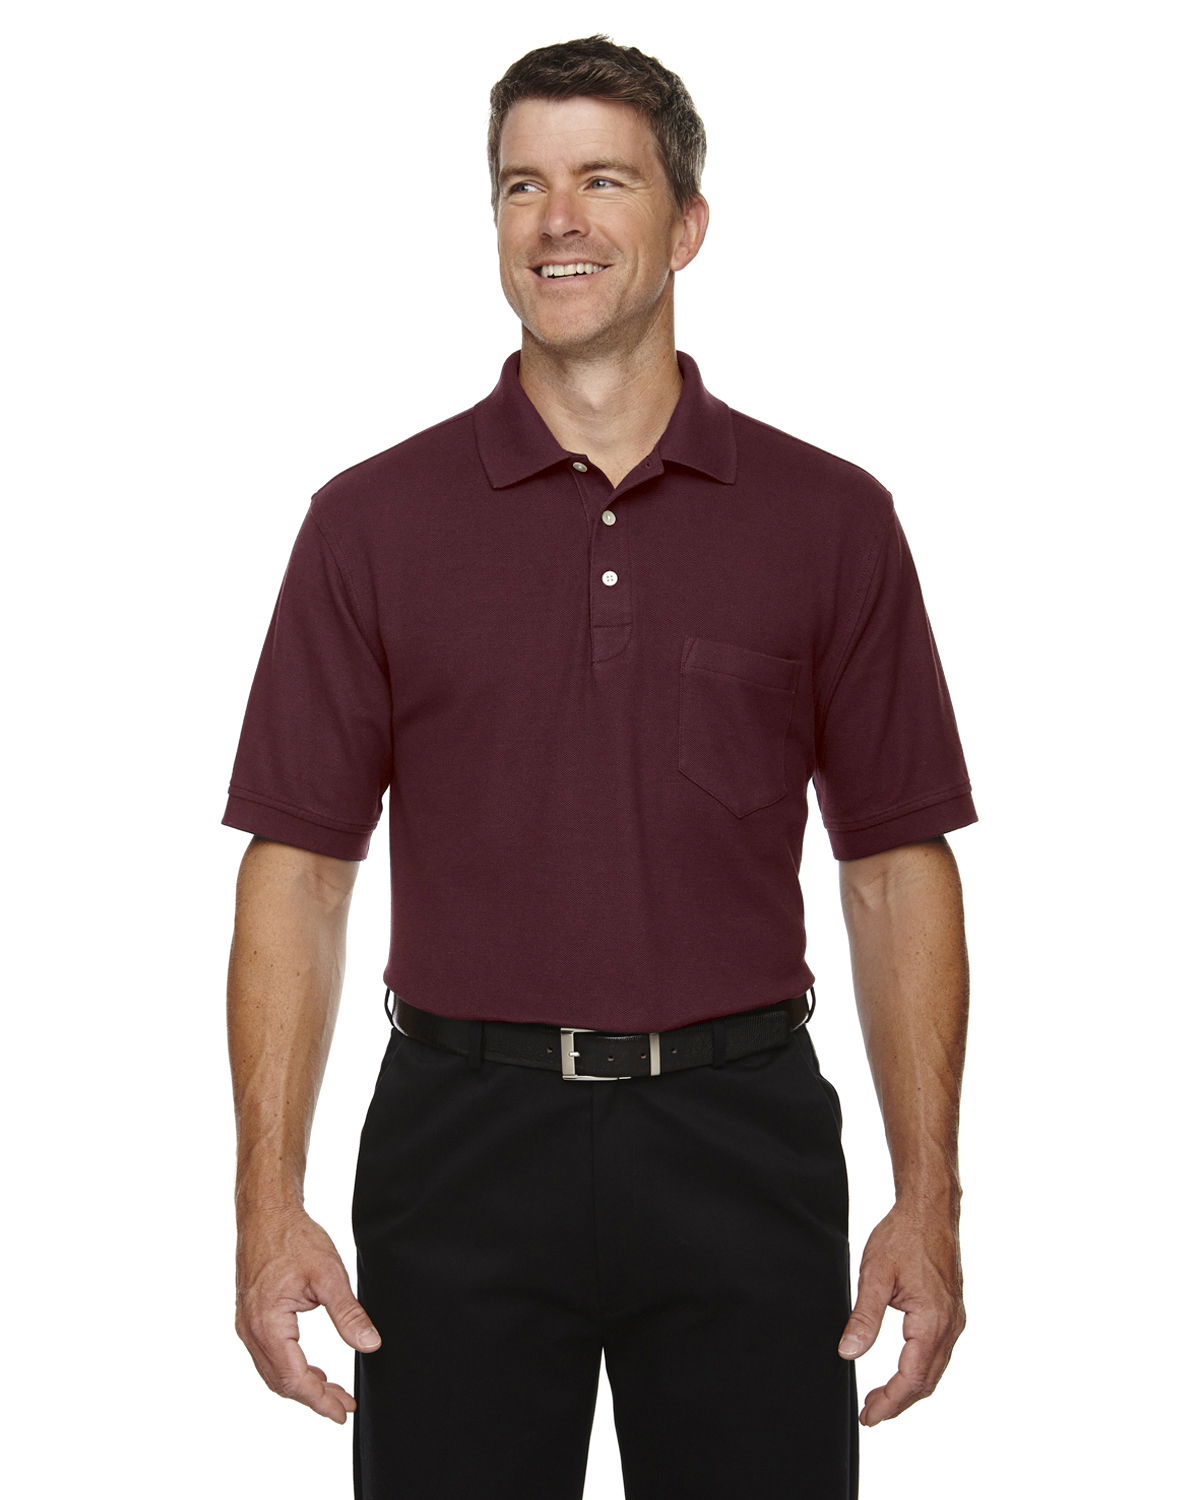 Devon & Jones DG150P - Men's DRYTEC20 Performance Pocket Polo